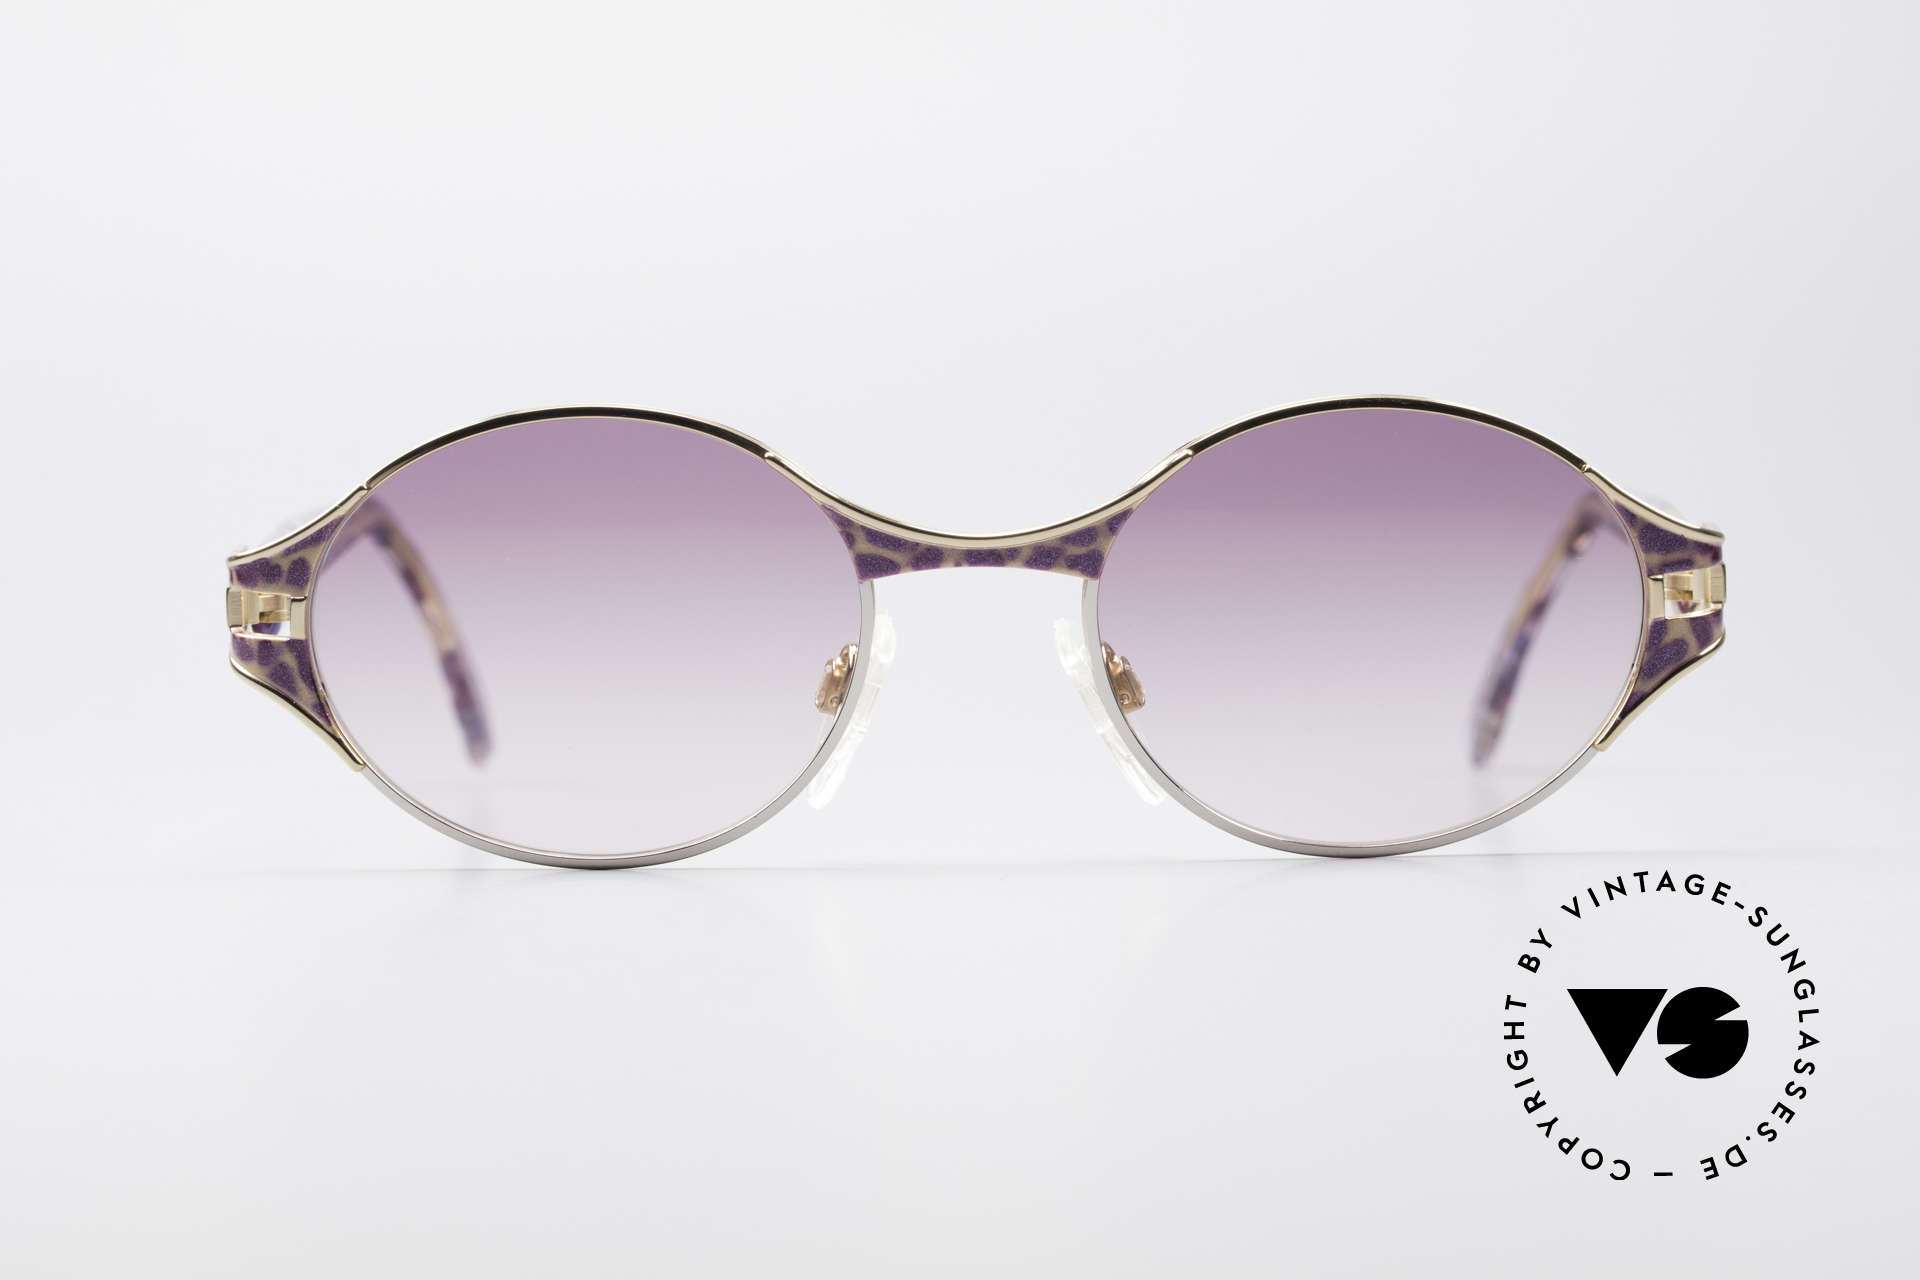 Cazal 281 Oval 90's Vintage Sunglasses, excellent combination of various design elements, Made for Women